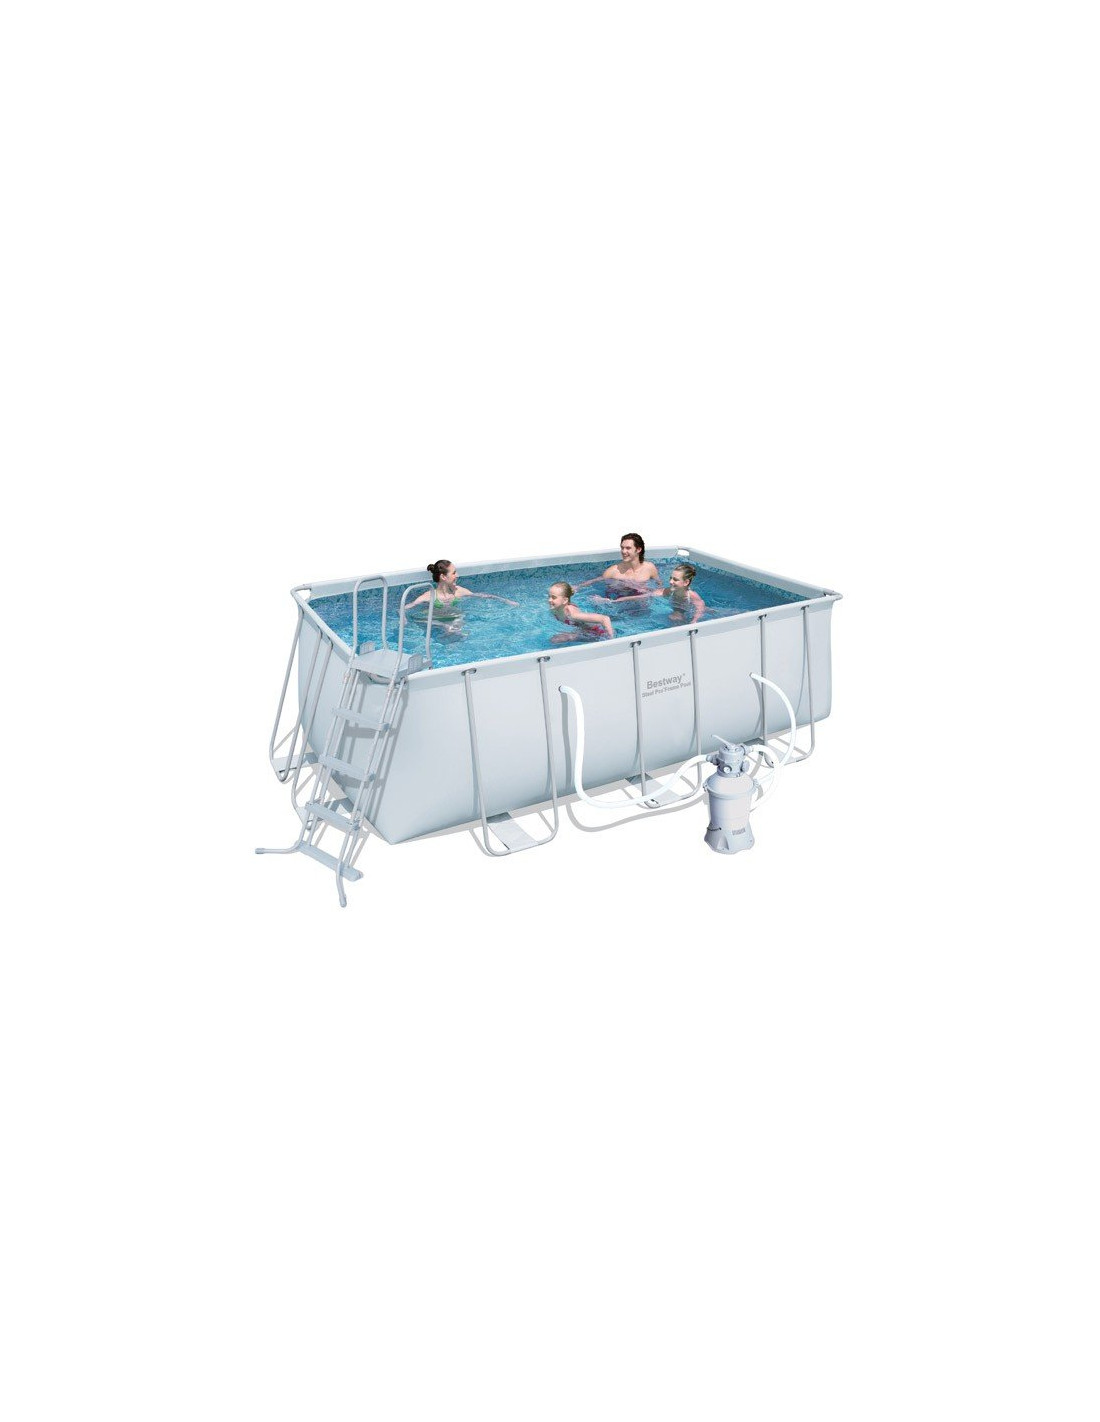 Piscine tubulaire rectangulaire bestway avec filtre sable for Filtre sable piscine